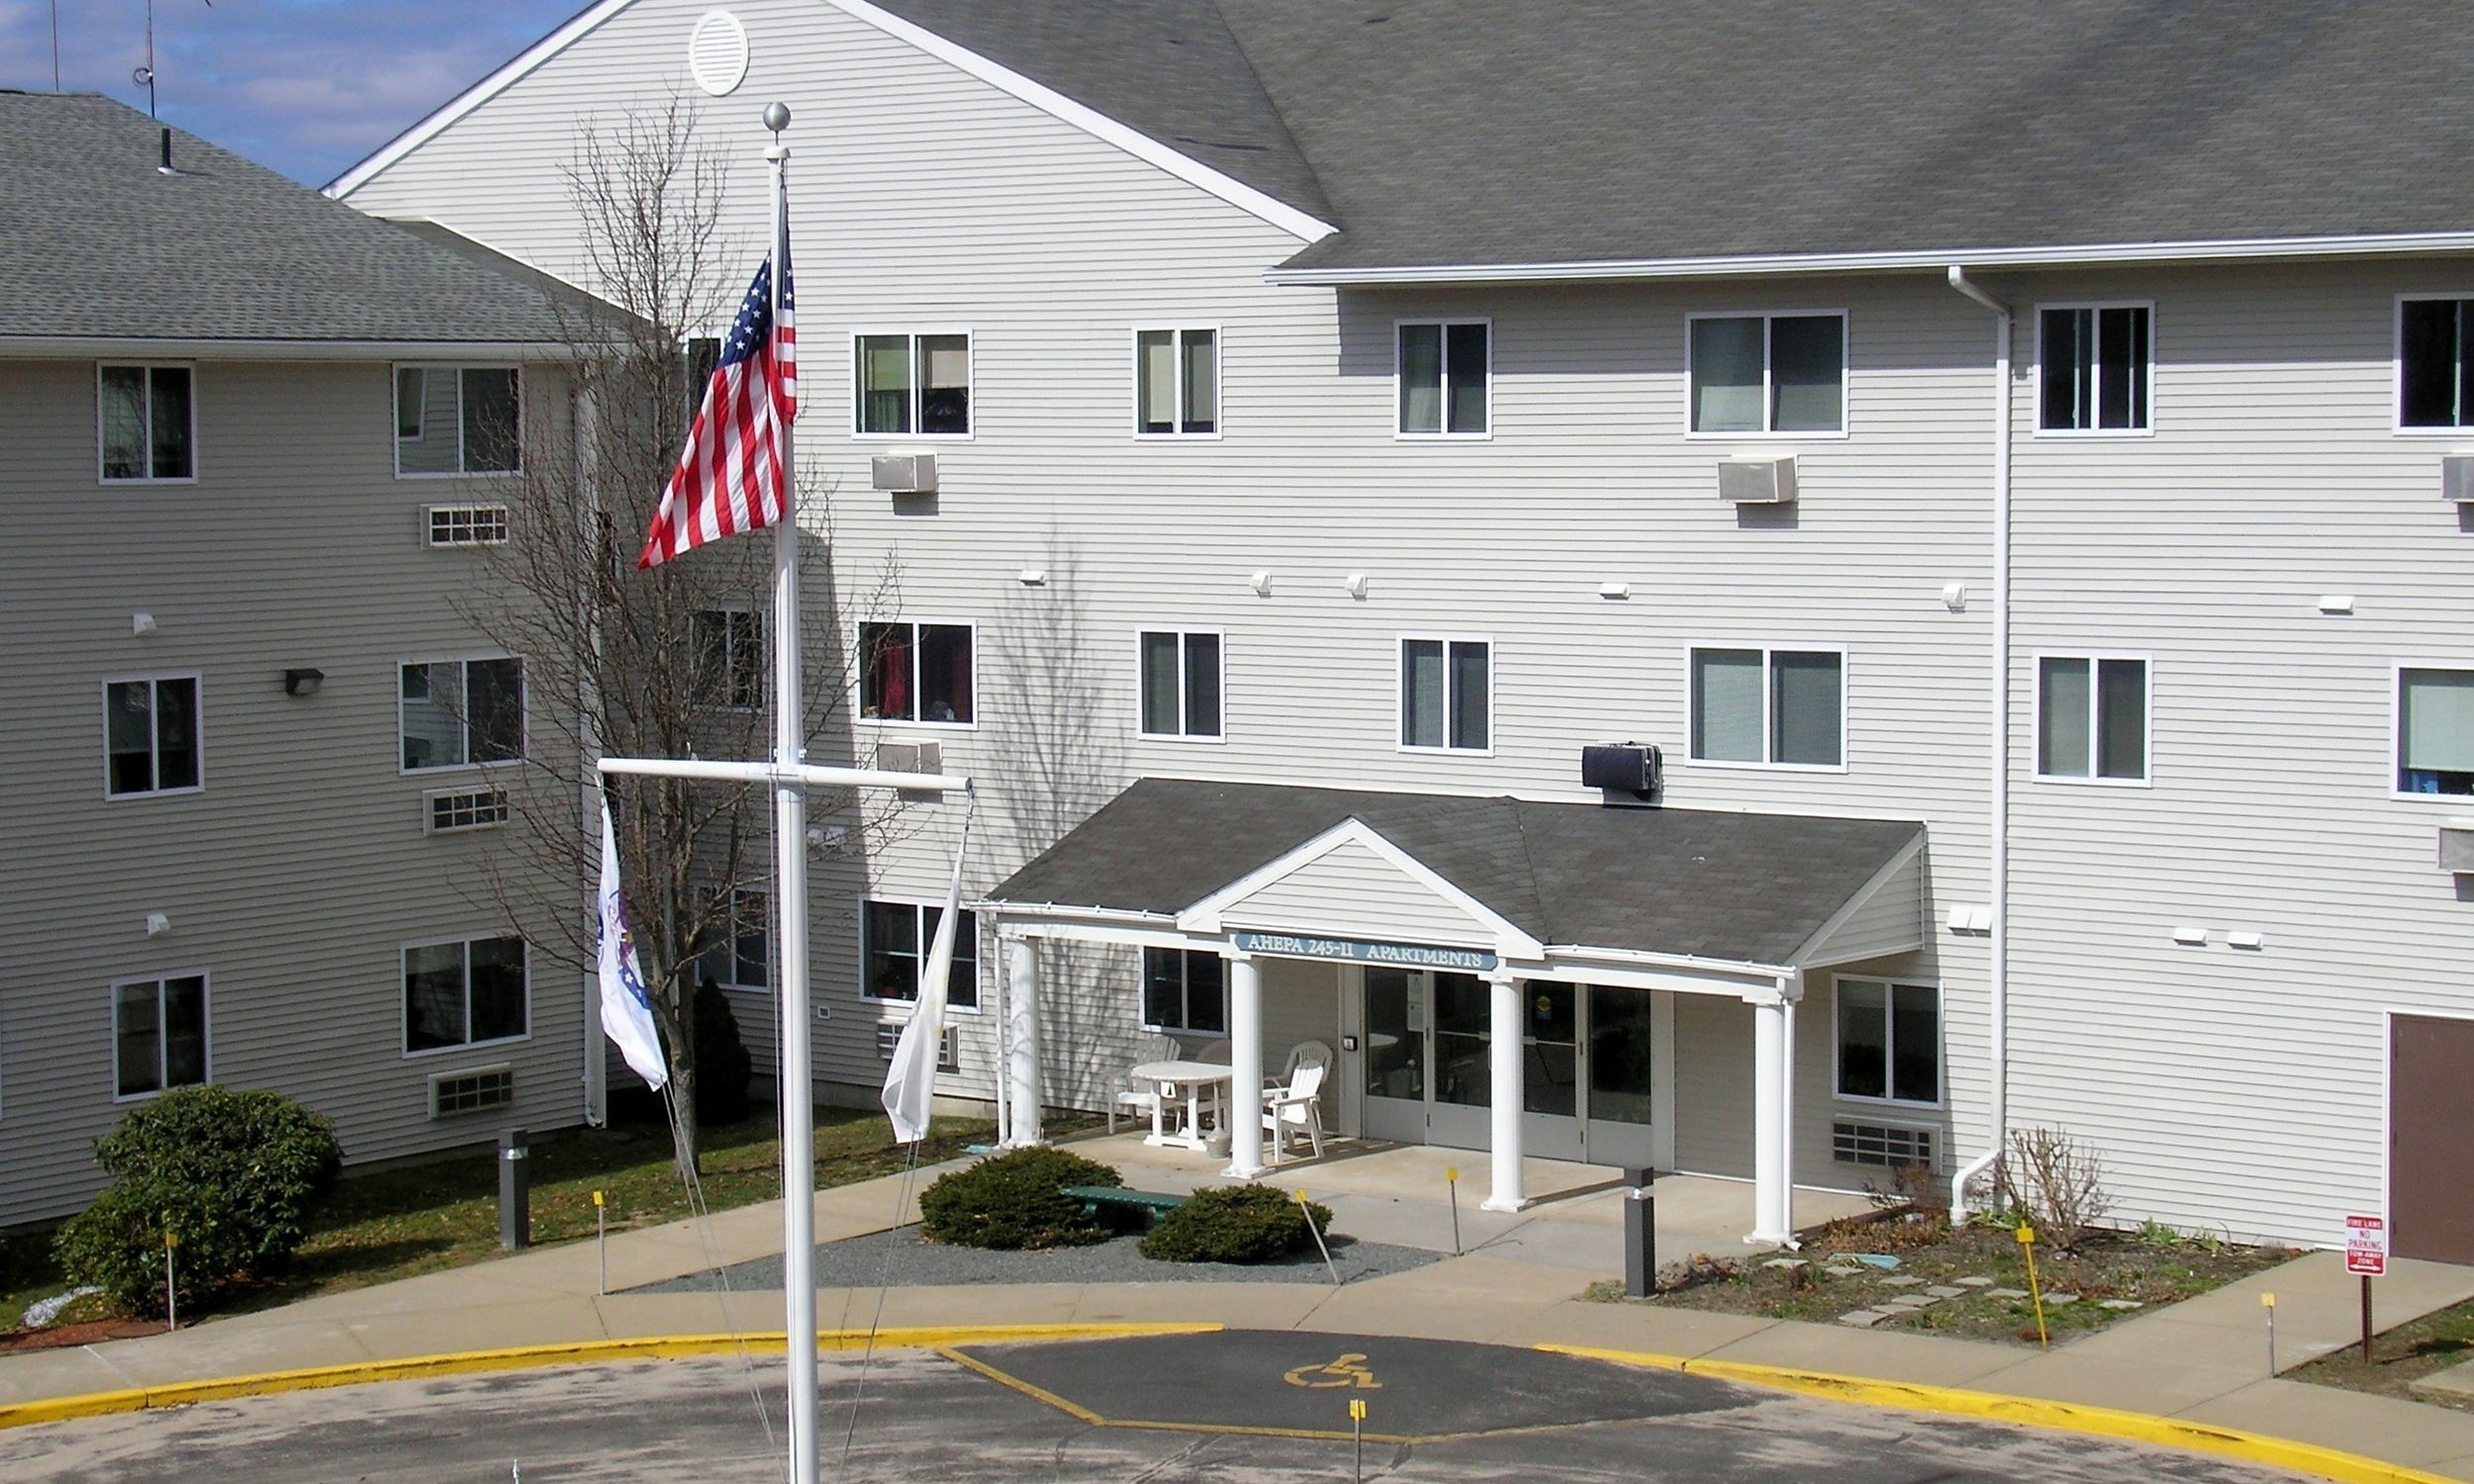 AHEPA 245 II Senior Apartments - 87 Girard AvenueNewport, RI 02840(401) 846-8619TTY: (800) 745-5555 or 711 (English)TTY: (866) 355-9214 or 711 (Español)info@ahepahousing.org